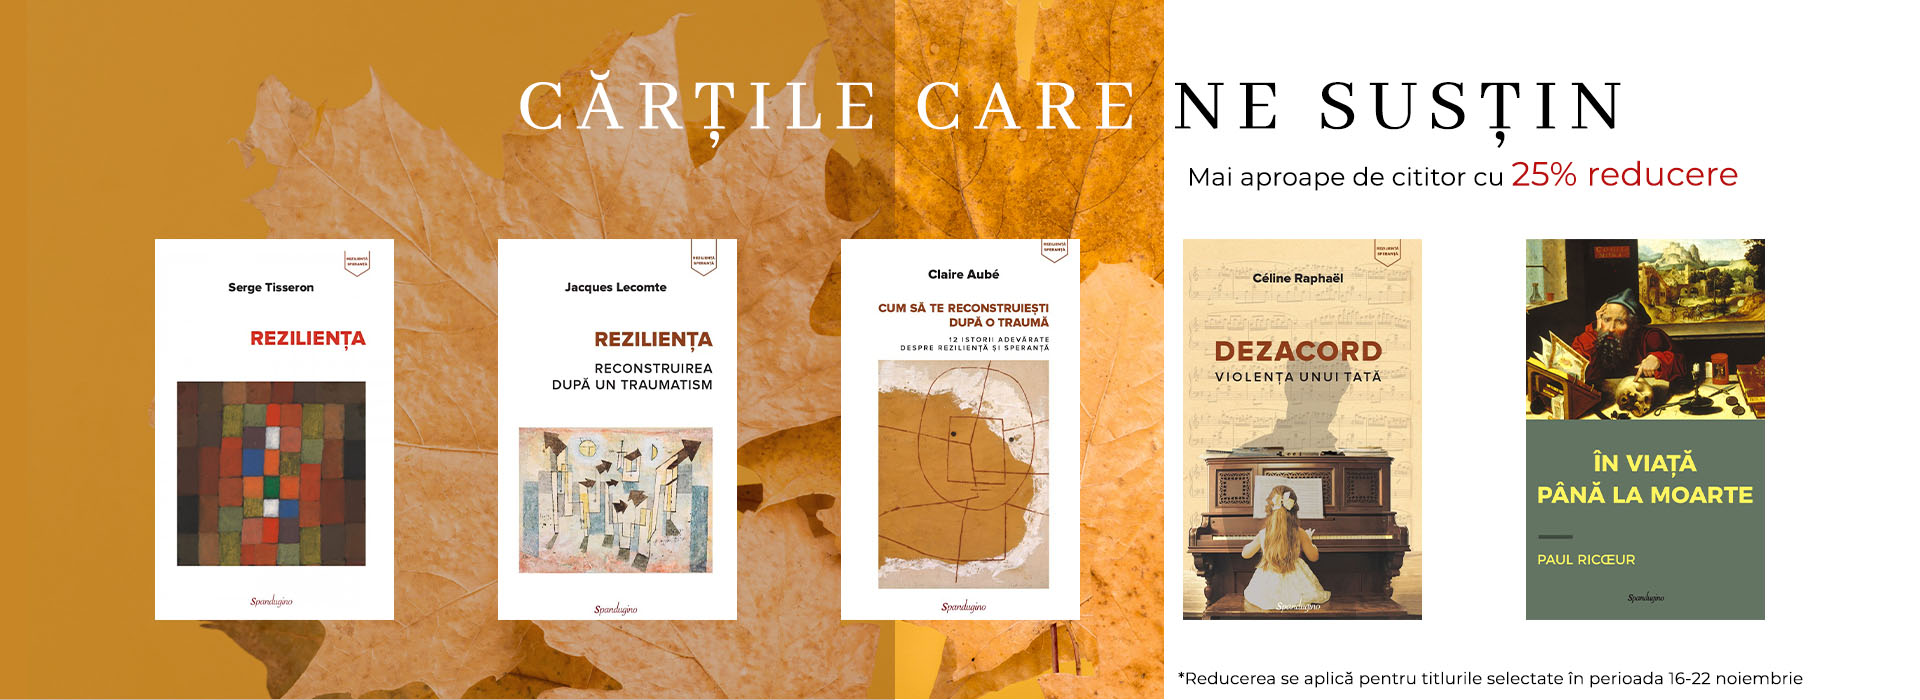 Cartile care ne sustin